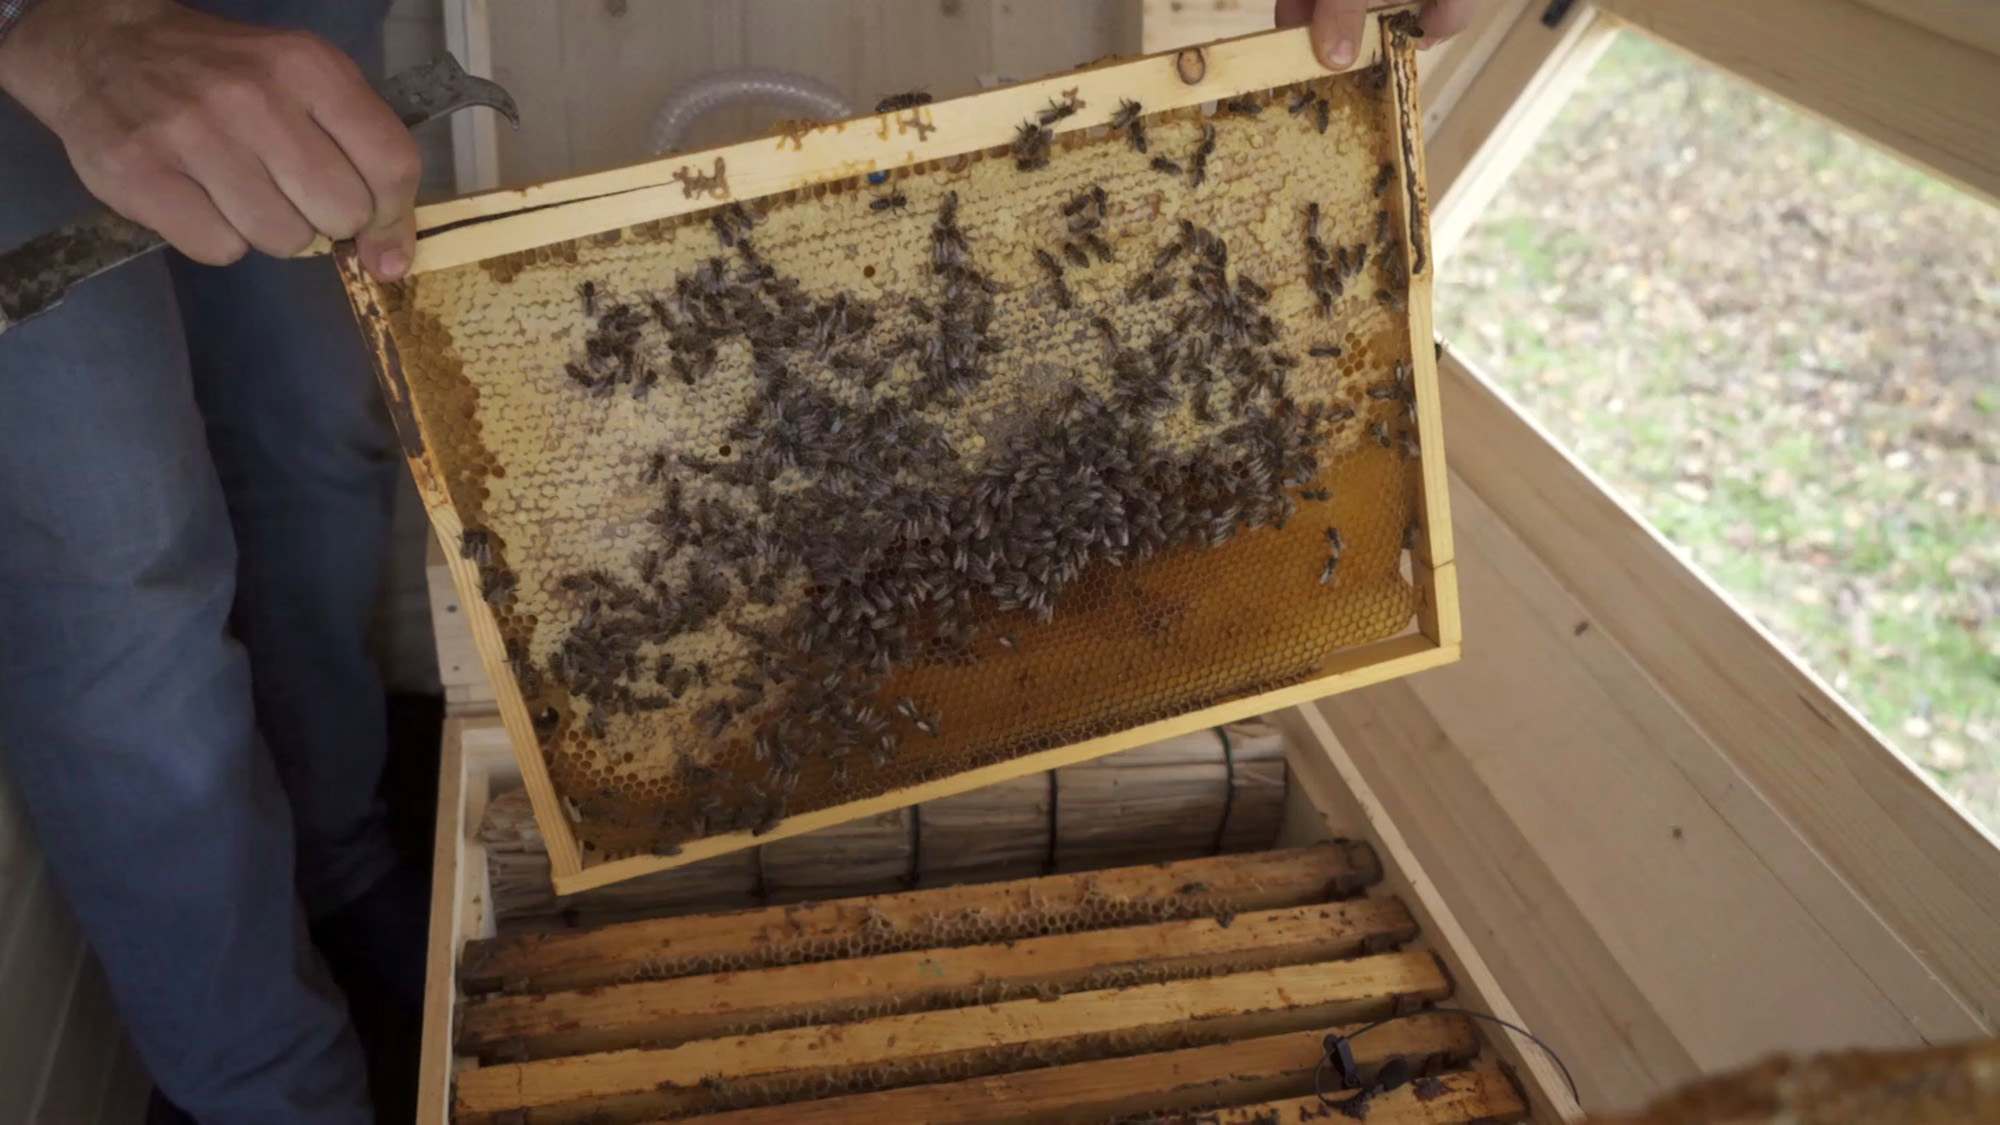 Bees in cabin